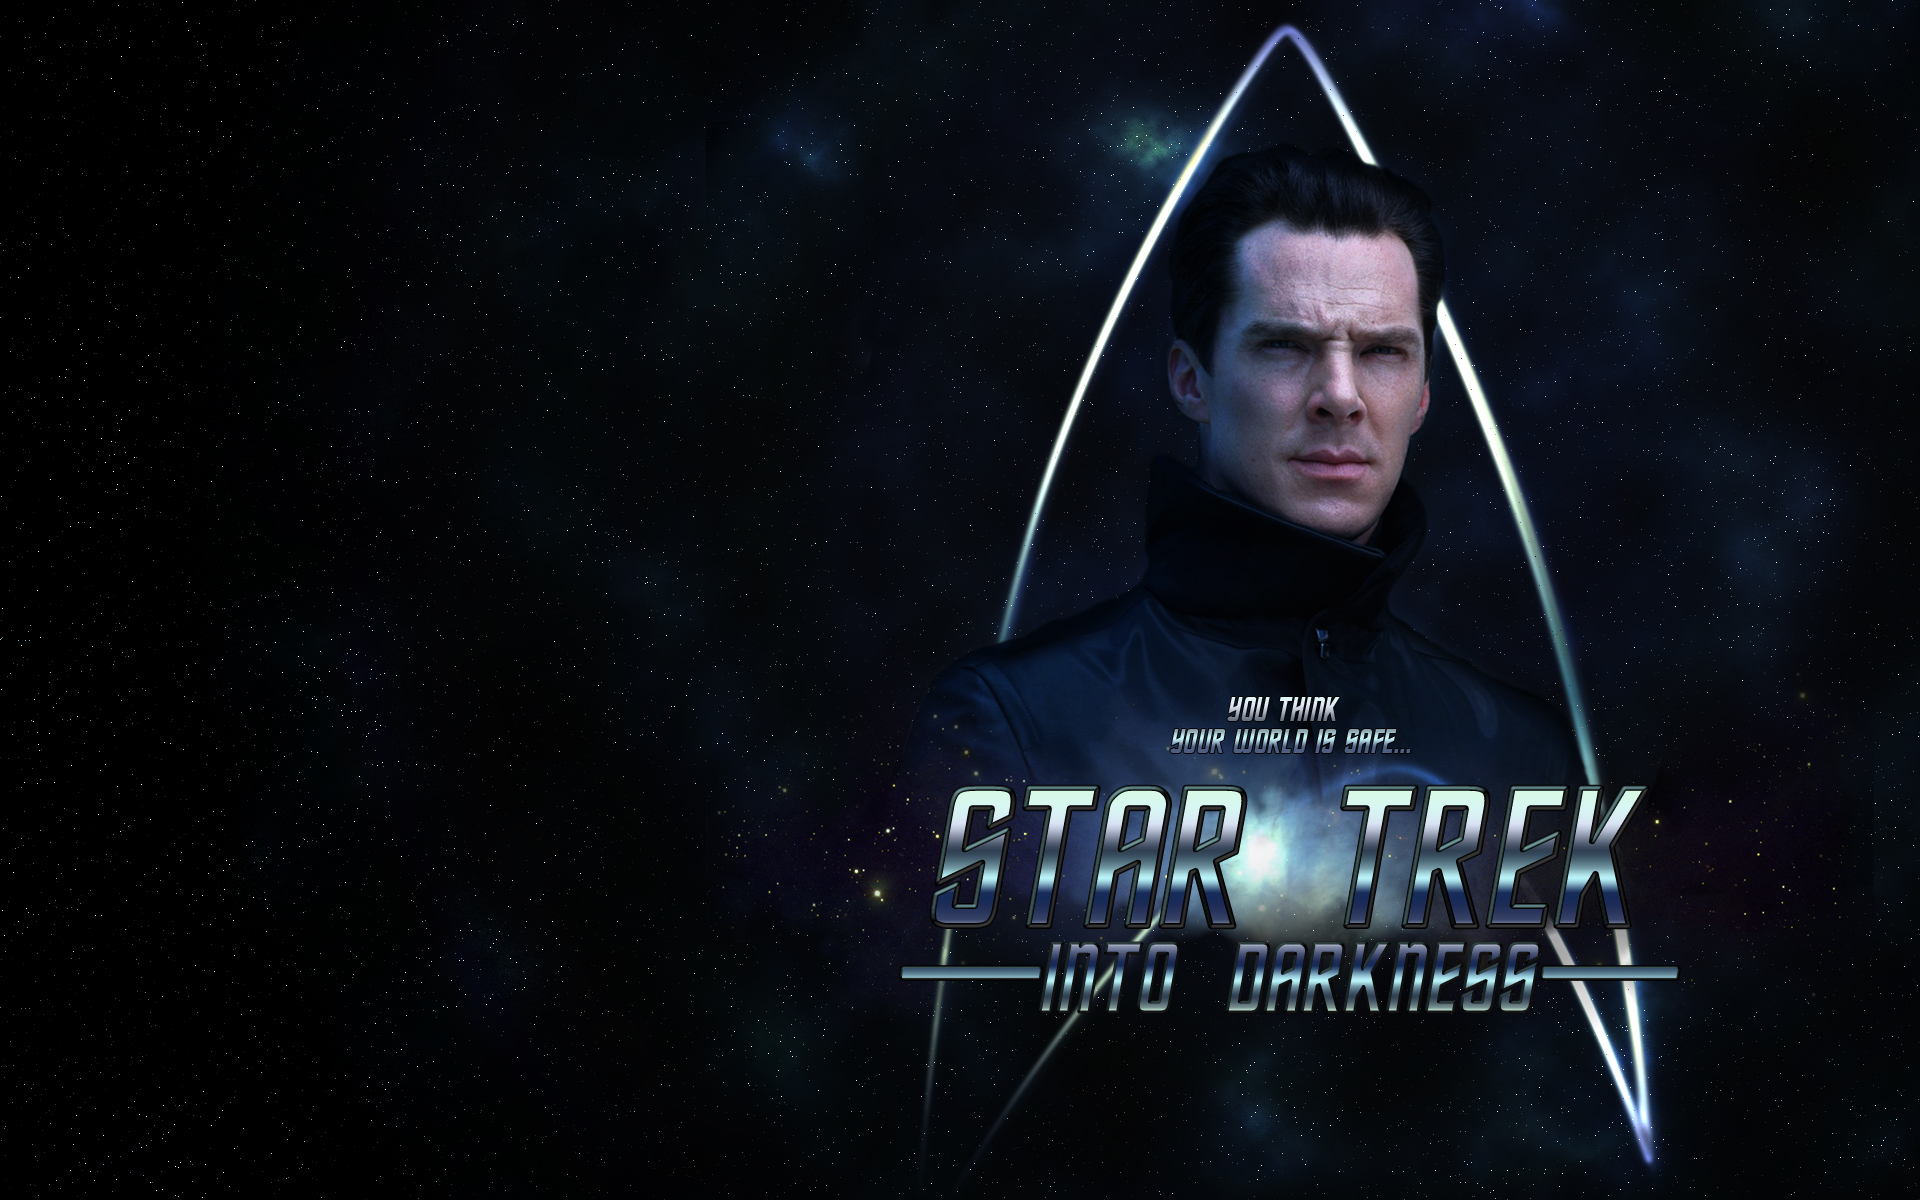 Star trek star trek into darkness wallpaper